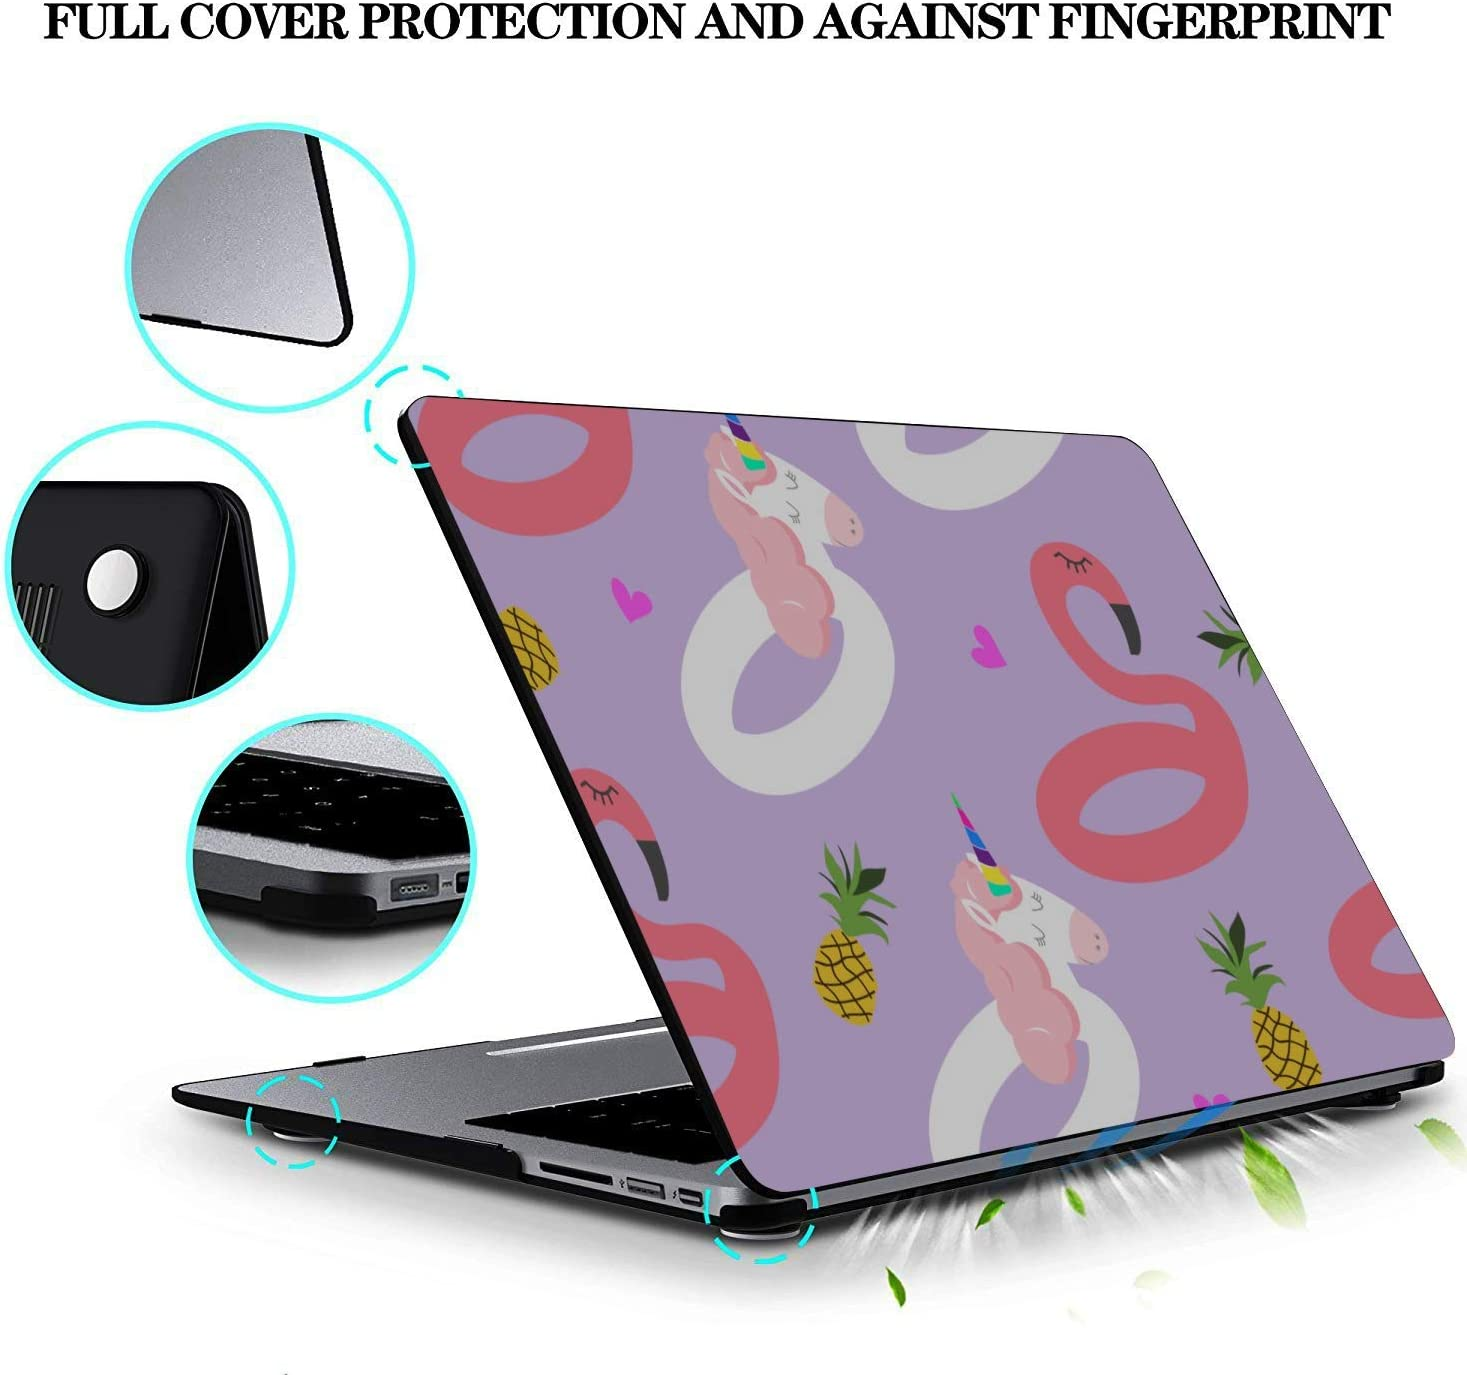 Case for MacBook Summer Romantic Fruit Cute Pineapple Plastic Hard Shell Compatible Mac Air 11 Pro 13 15 MacBook Accessories 13 Inch Protection for MacBook 2016-2019 Version